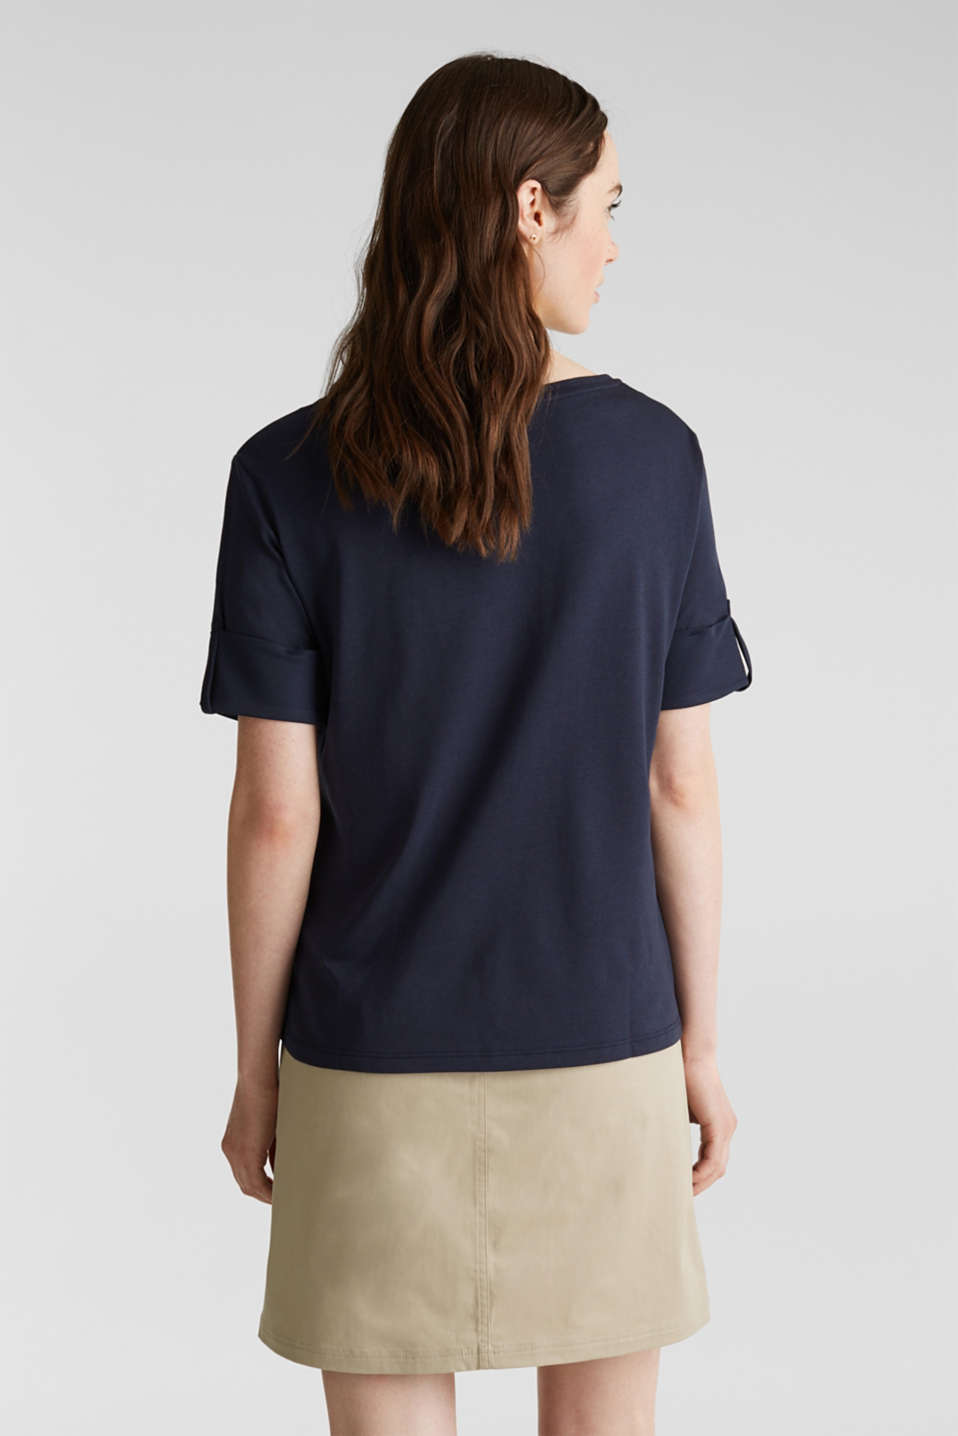 T-shirt with turn-up sleeves, NAVY, detail image number 3